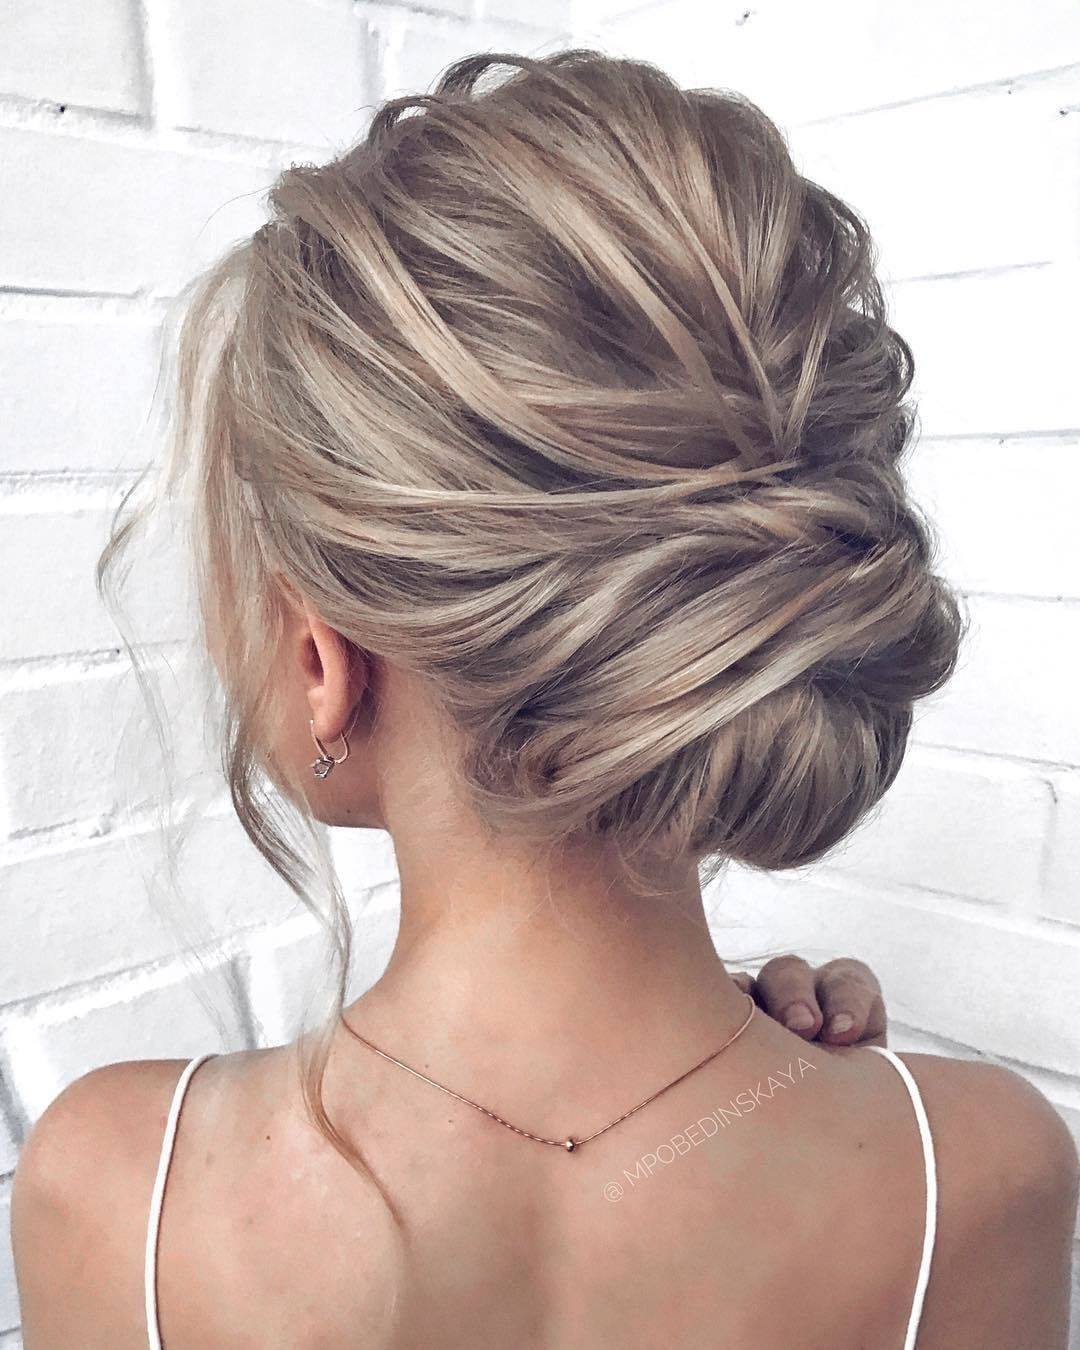 Updo Hairstyles For Prom Wedding Or Etc 2019 Page 5 Of